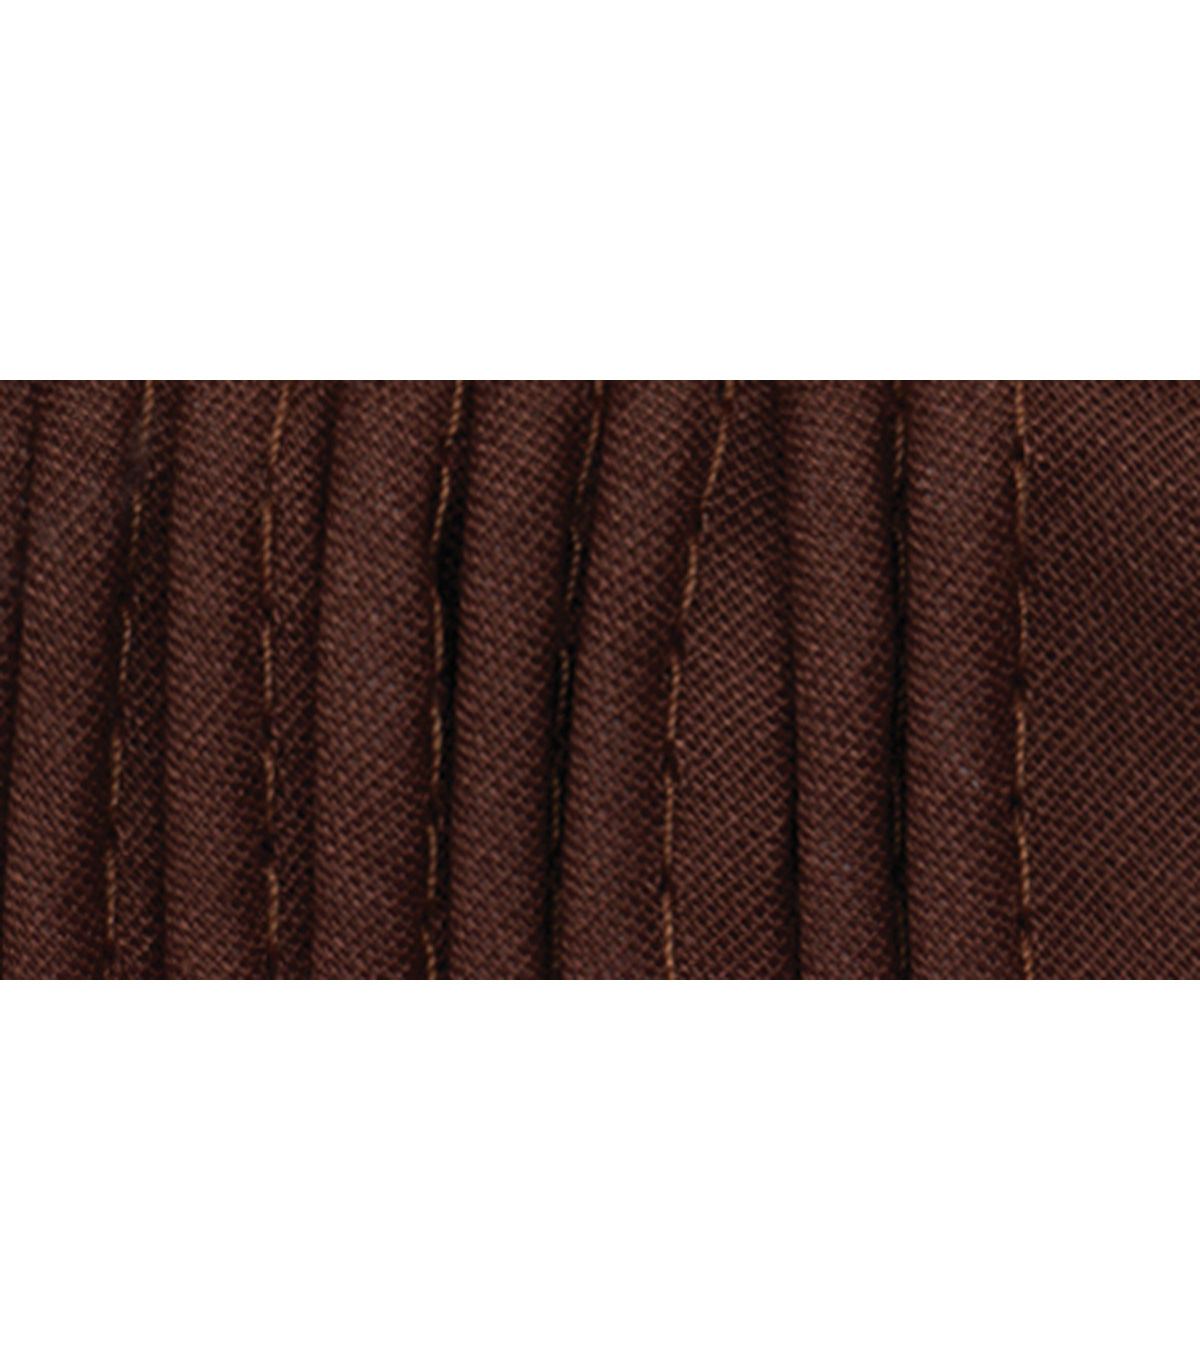 Wrights Maxi Piping 1/2\u0022 2-1/2 Yards, Mocha